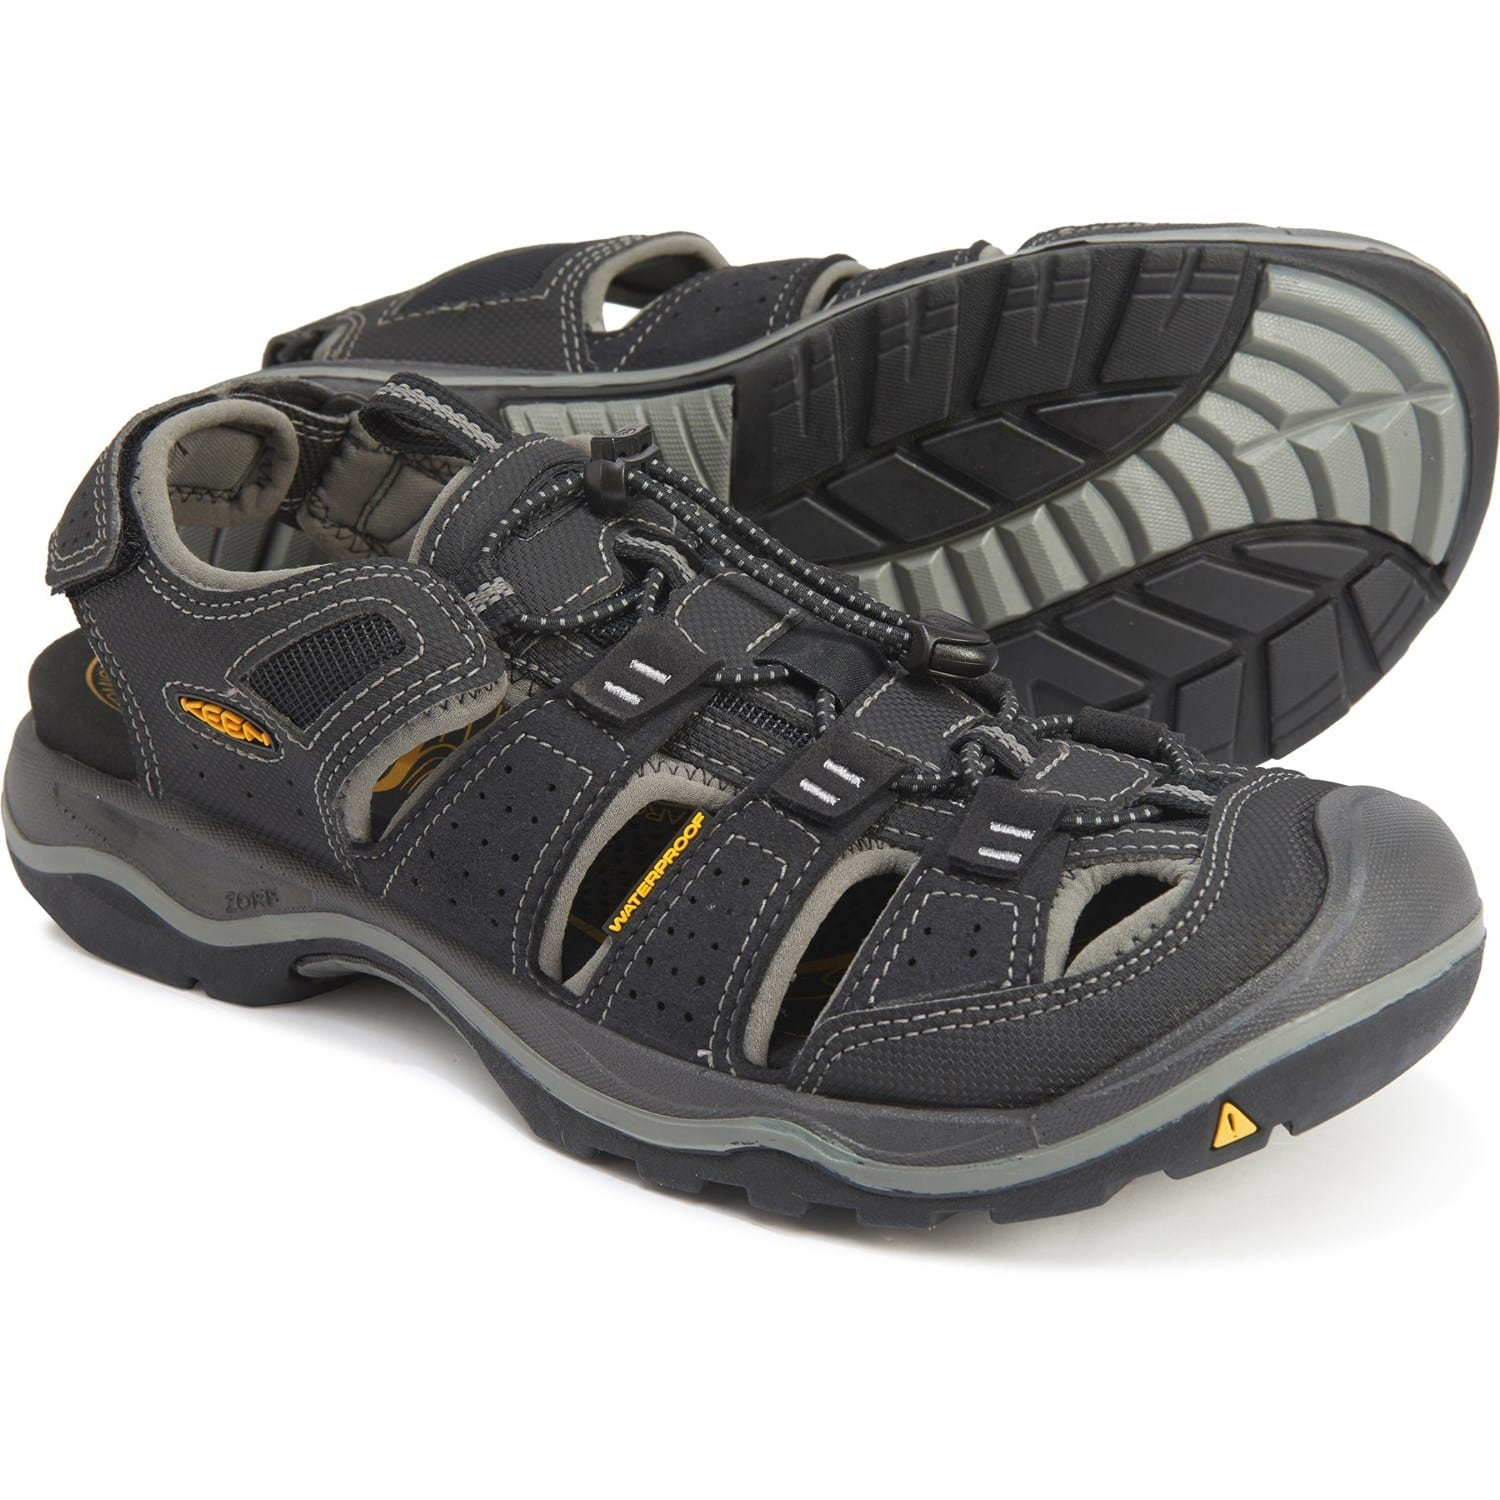 KEEN Rialto II H2 Hiking/Backpacking Closed Toe Sandals for Men $43 + shipping